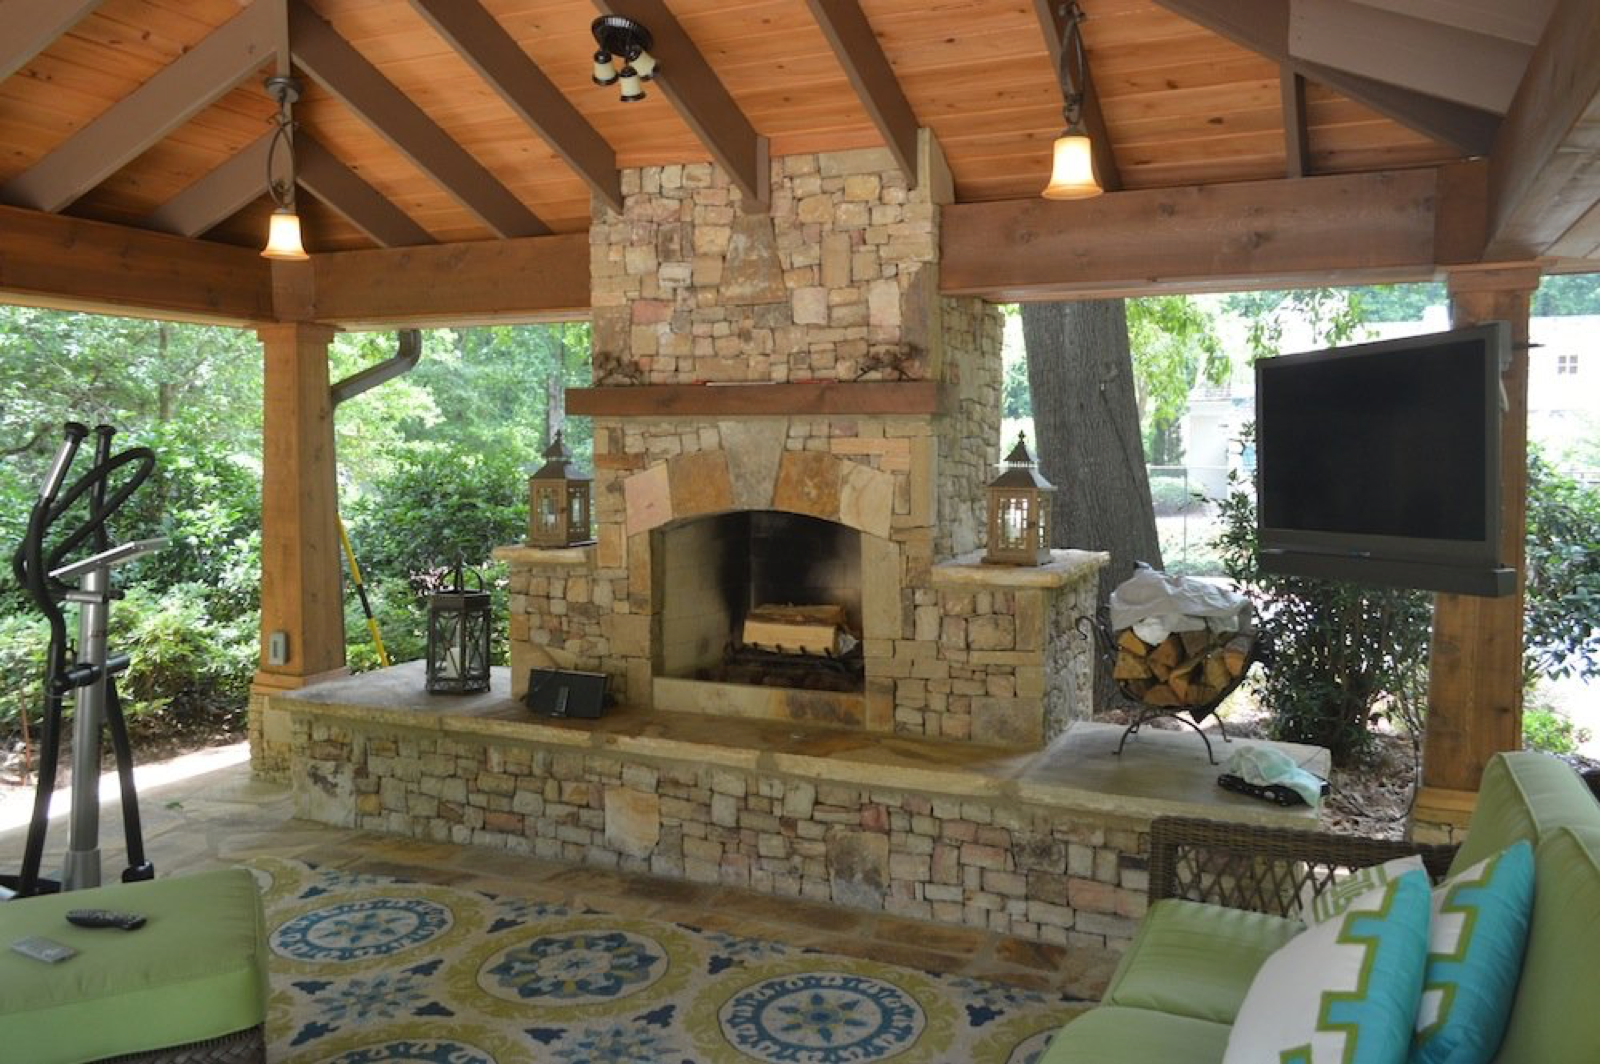 An outdoor fire place constructed of rough cut bricks is stationed under an outdoor covering.